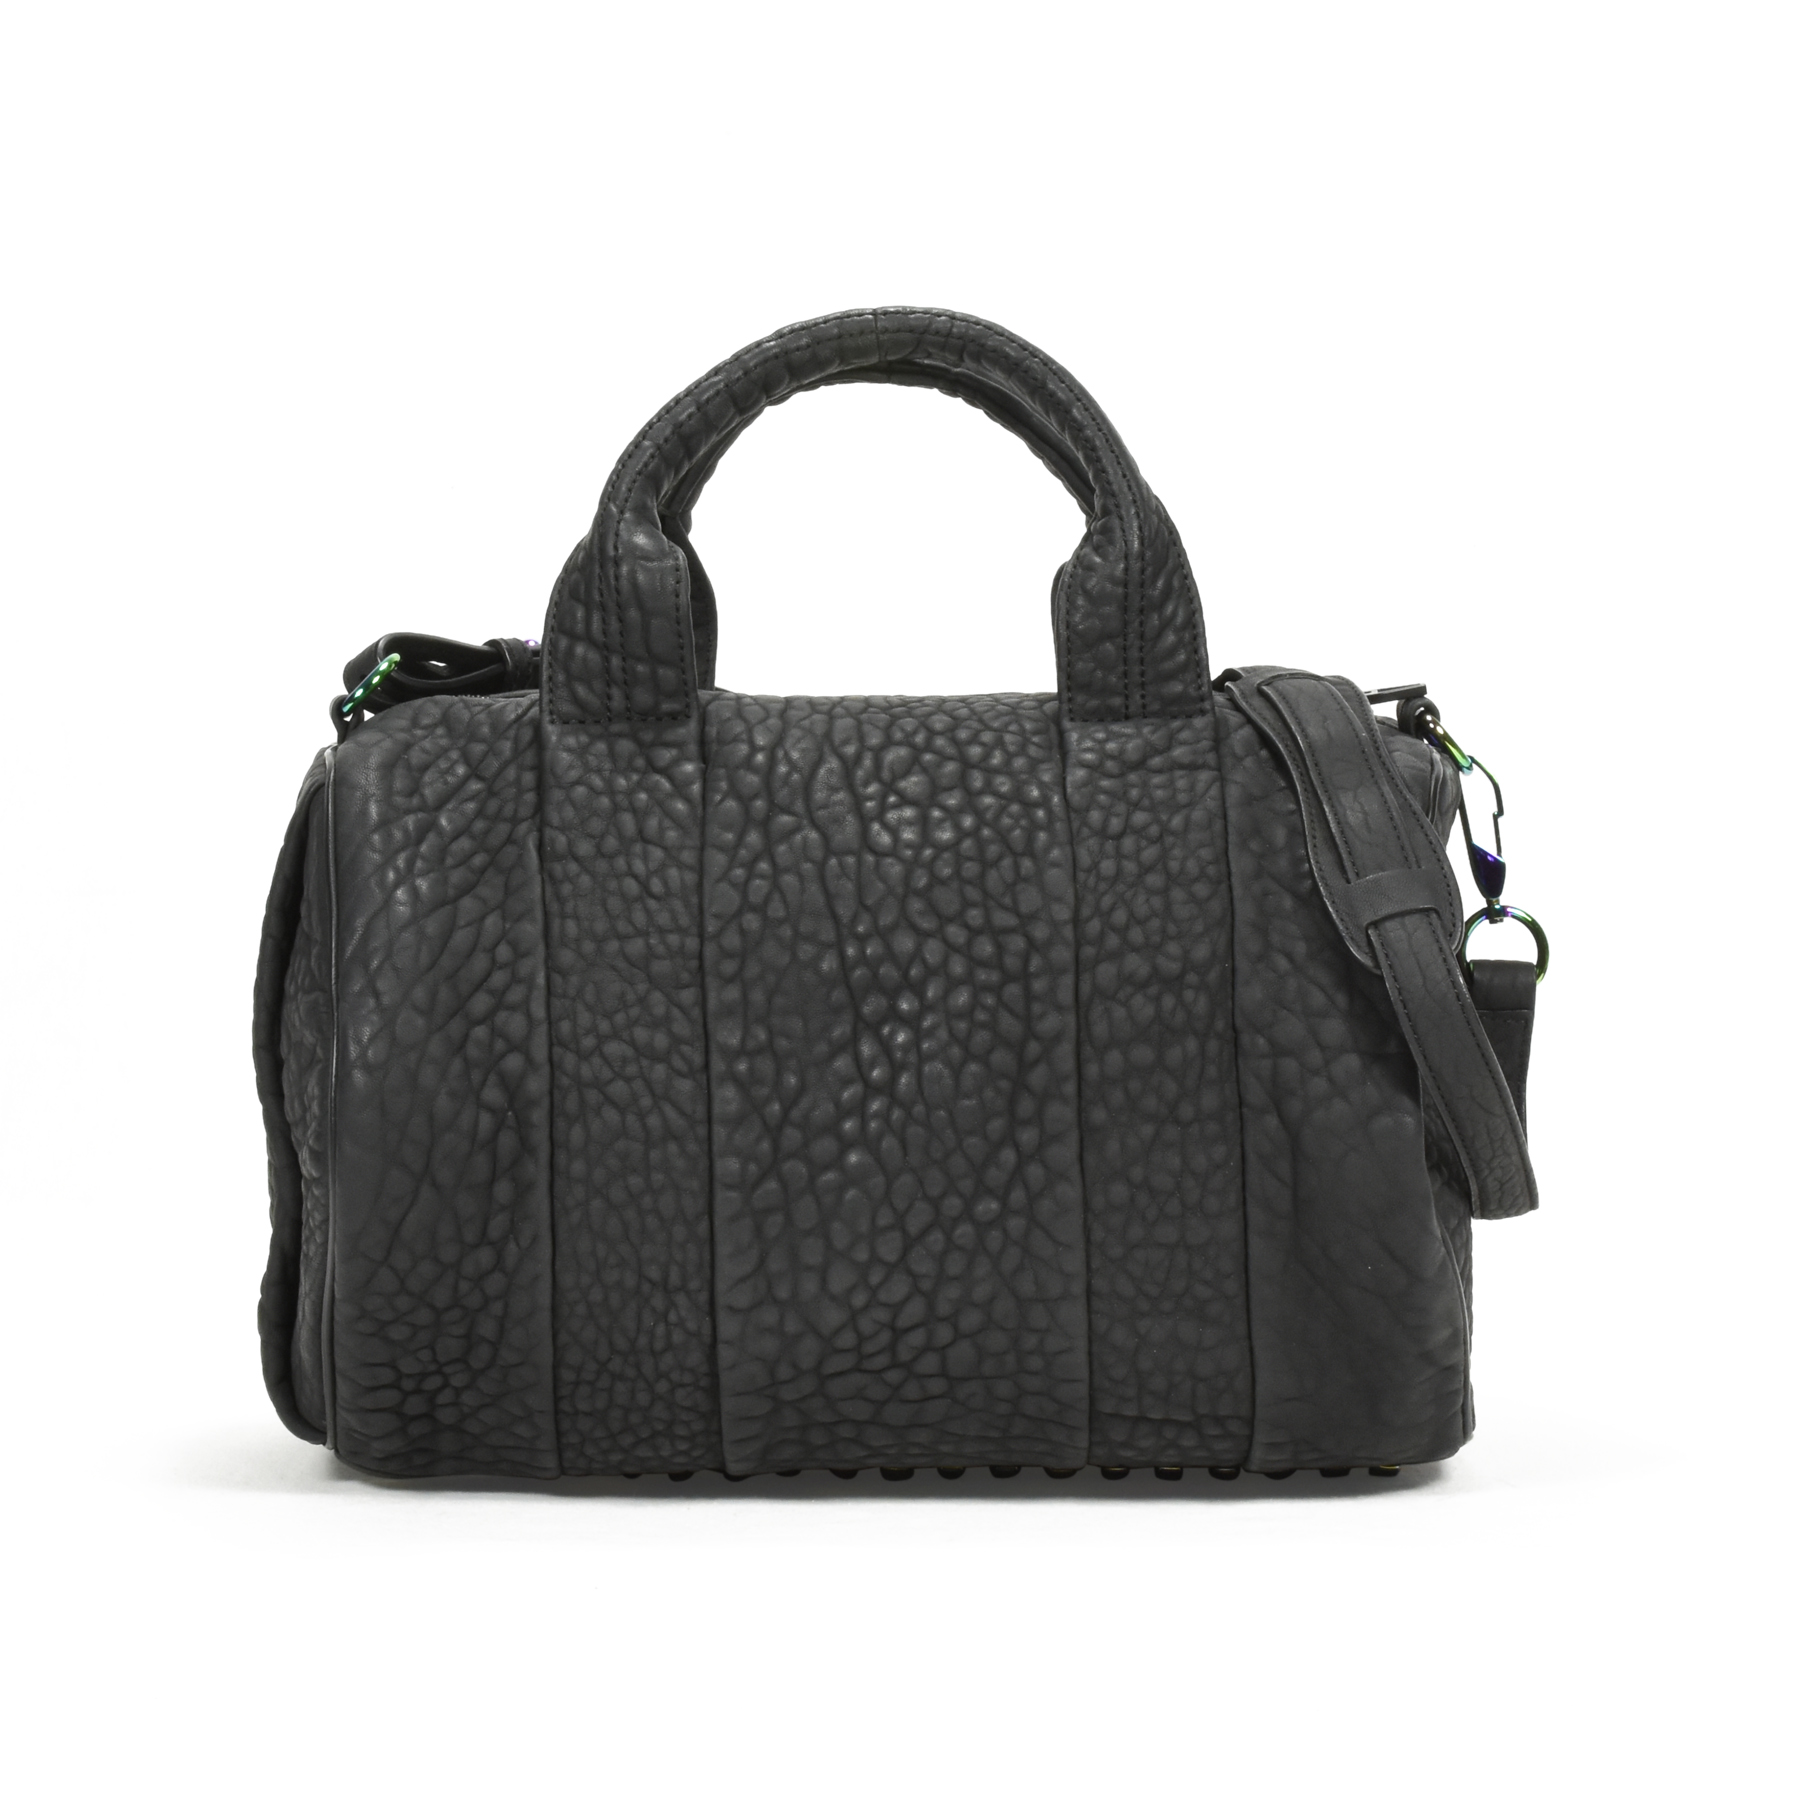 Authentic Pre Owned Alexander Rocco Bag Pss 355 00012 The Fifth Collection